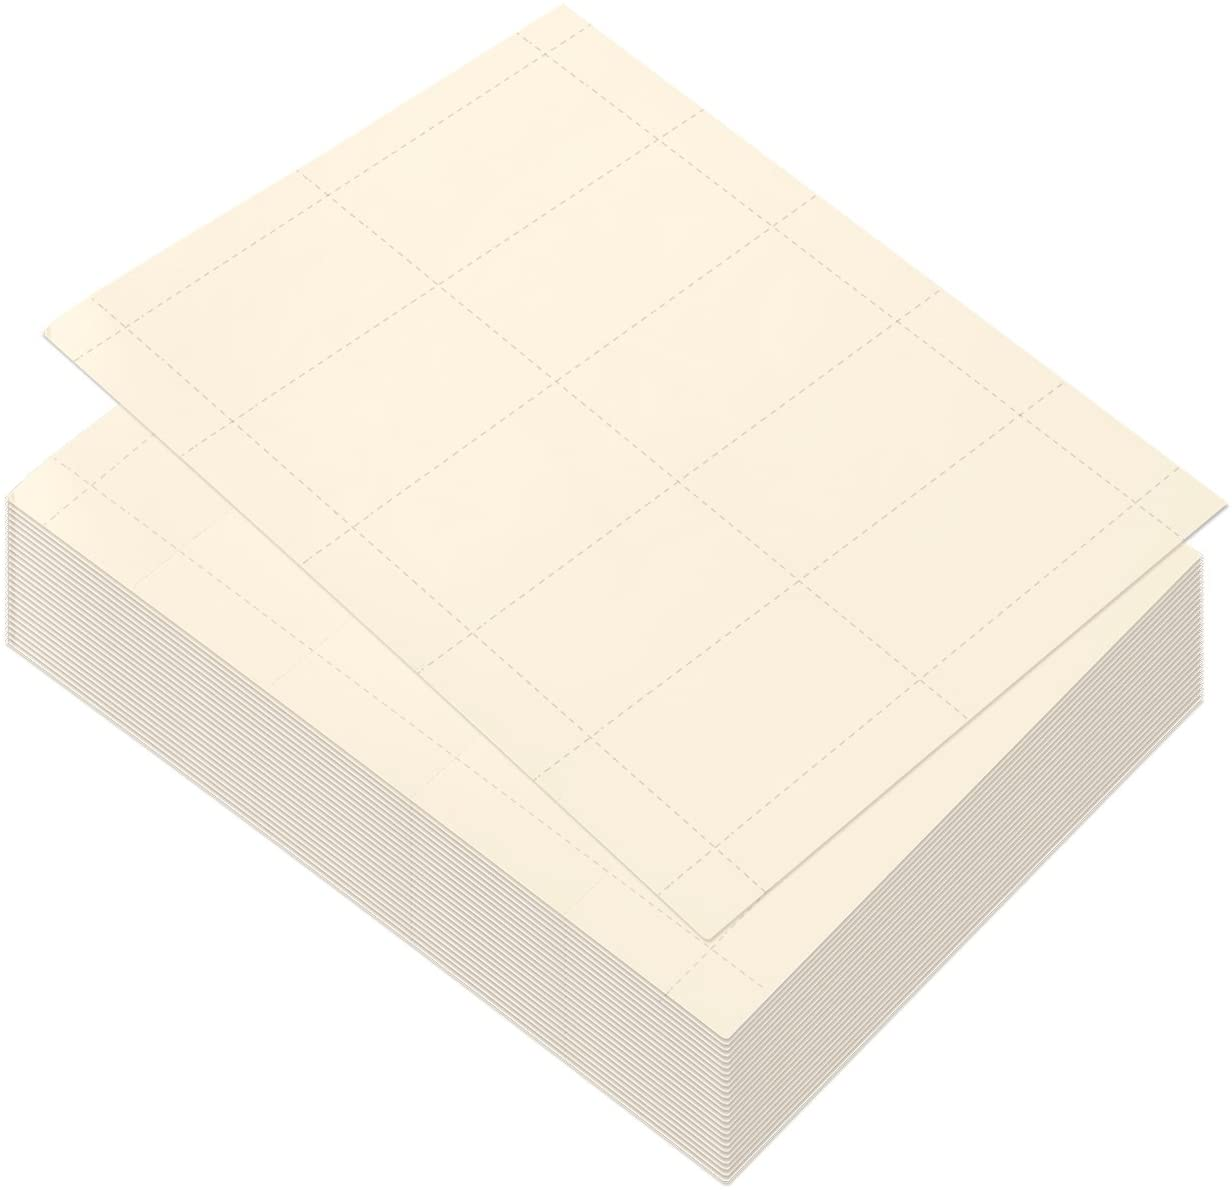 Business Card Paper, Ivory Cardstock for Inkjet and Laser Printers (Ivory, 3.5 x 1.9 In, 100 Sheets)